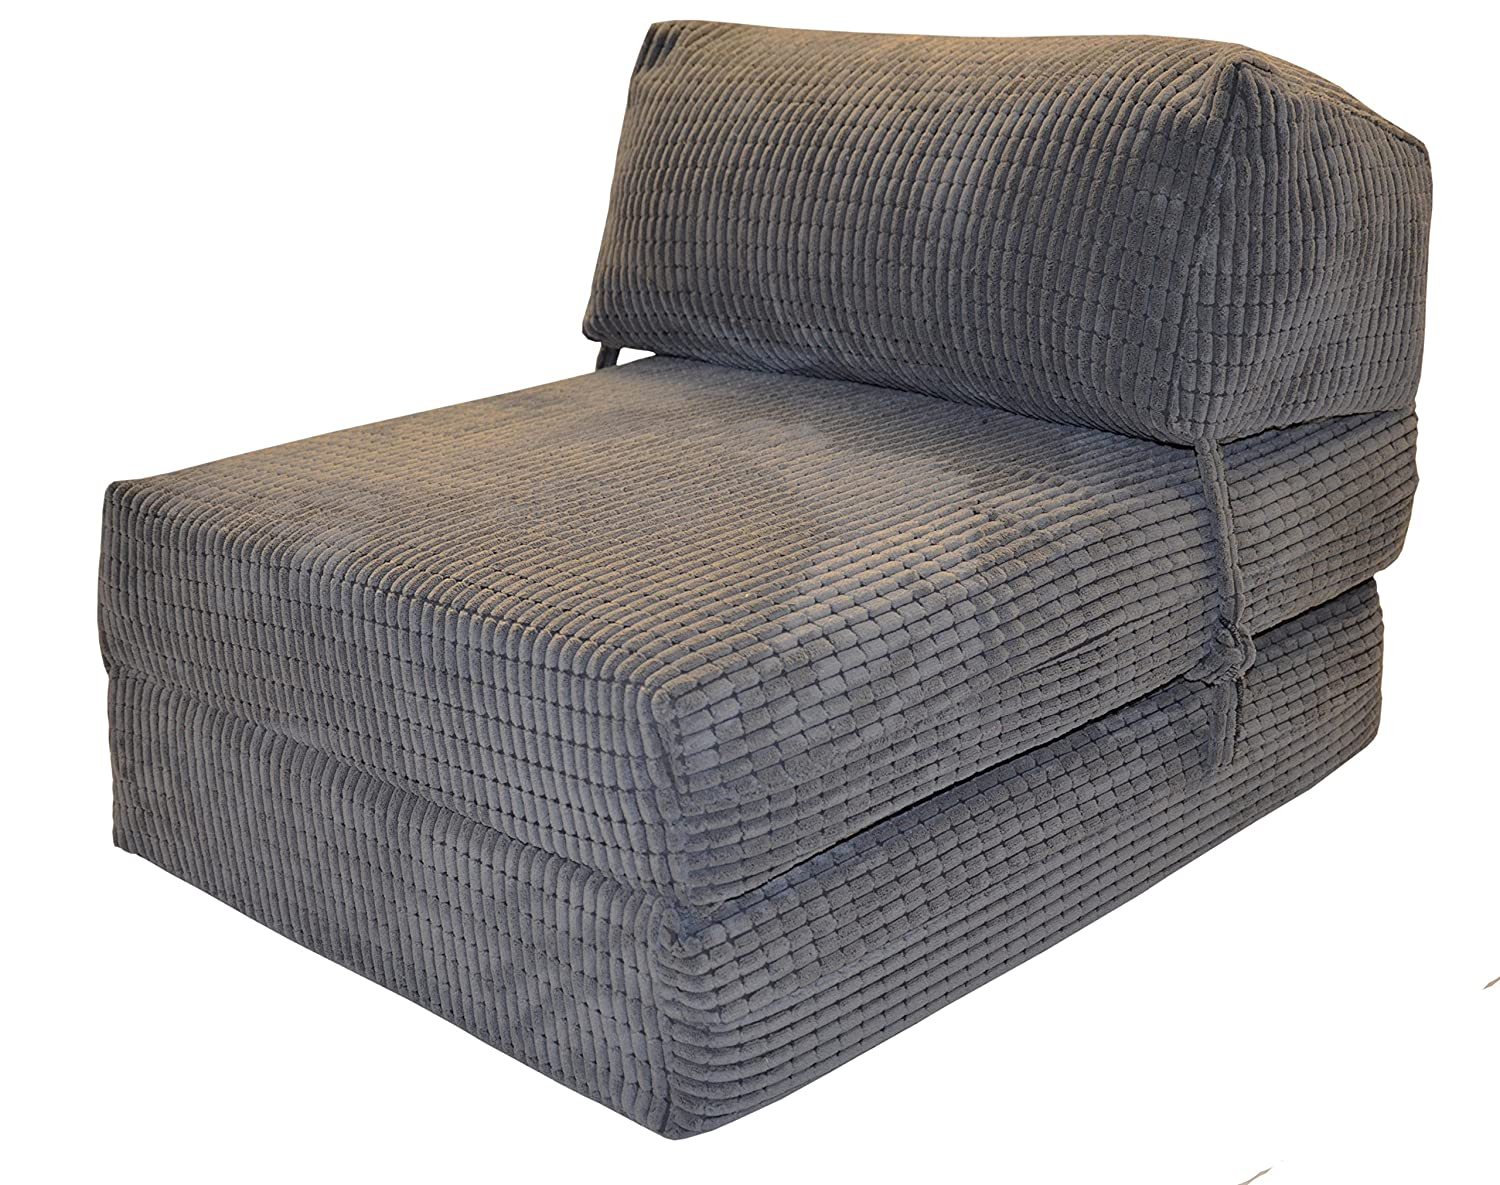 JAZZ CHAIRBED   CHARCOAL DA VINCI Deluxe Single Chair Bed Futon